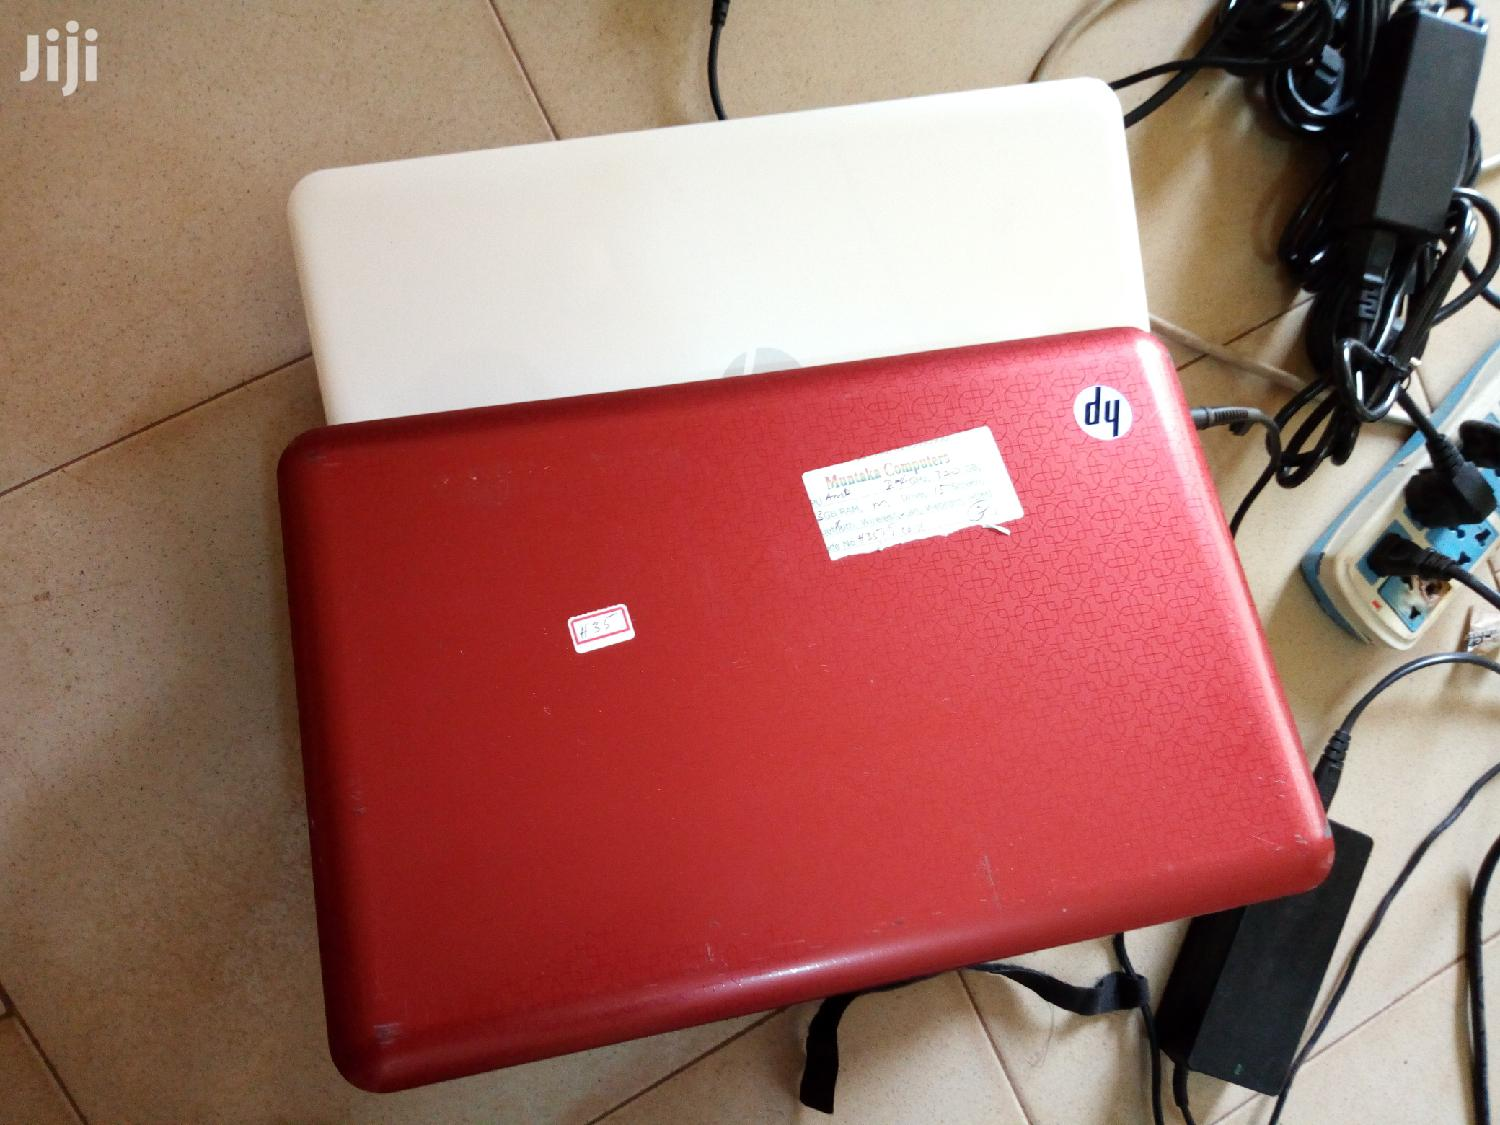 New Laptop HP 250 G2 4GB AMD HDD 500GB | Laptops & Computers for sale in Tamale Municipal, Northern Region, Ghana